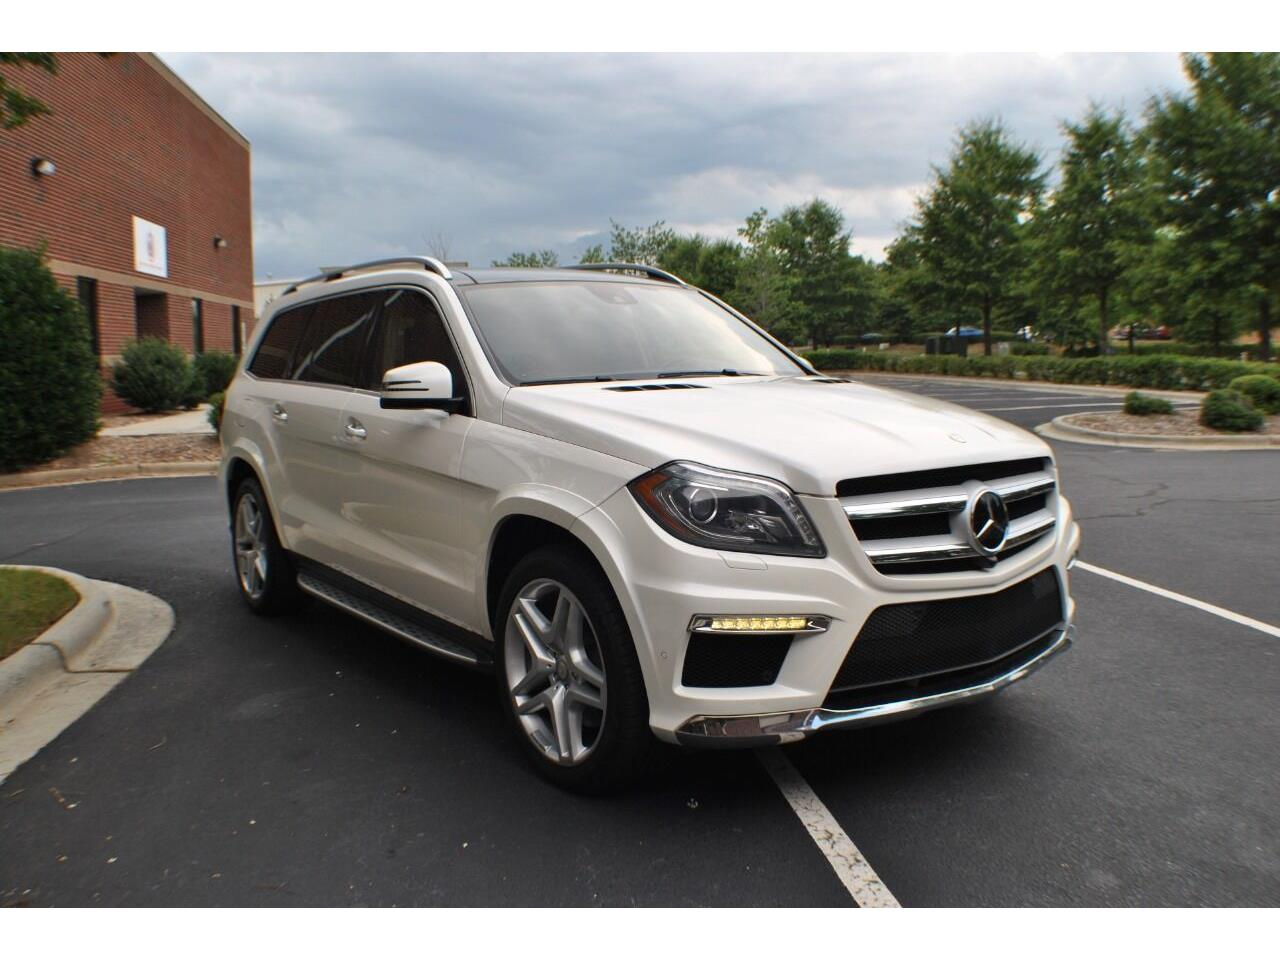 2013 Mercedes-Benz GL450 (CC-1363958) for sale in Charlotte, North Carolina